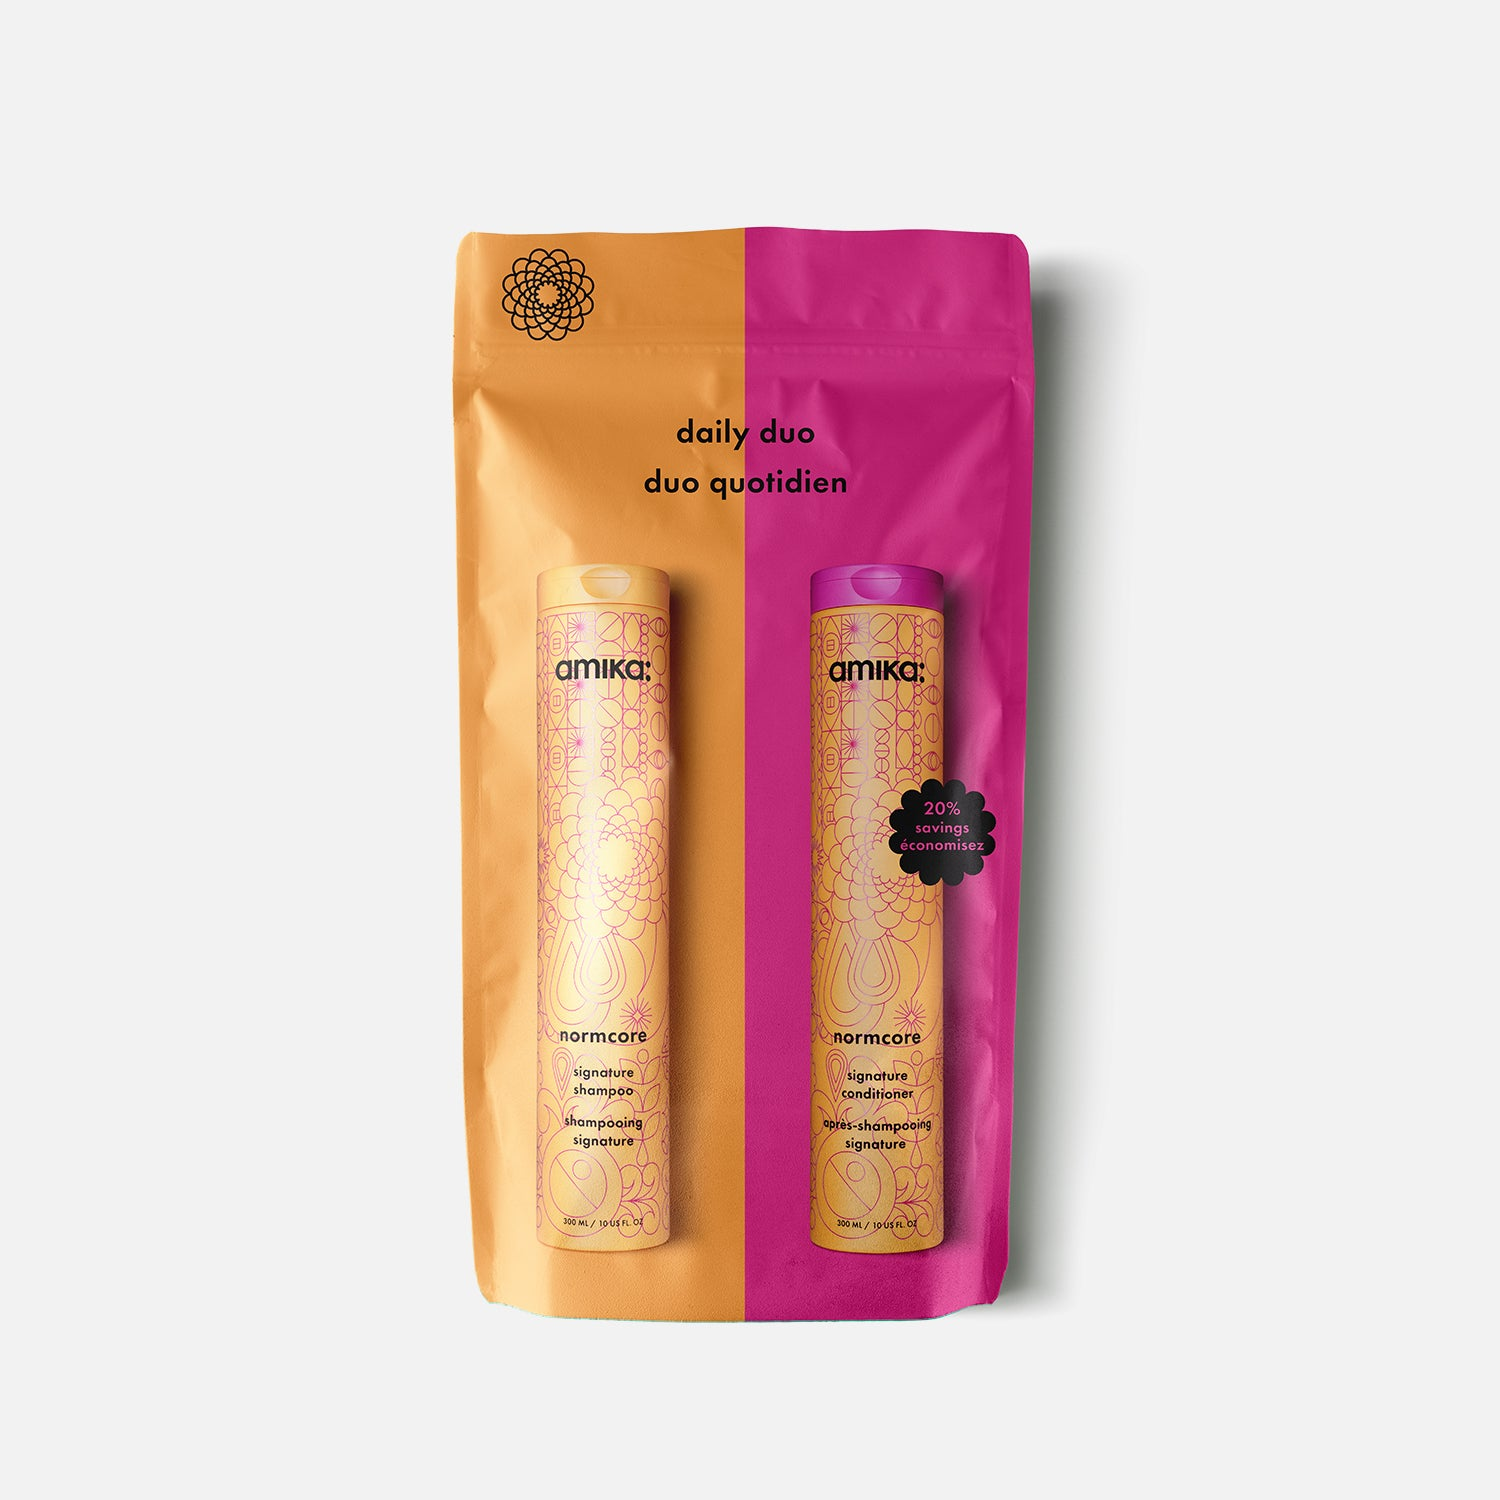 normcore daily duo signature shampoo + conditioner | amika